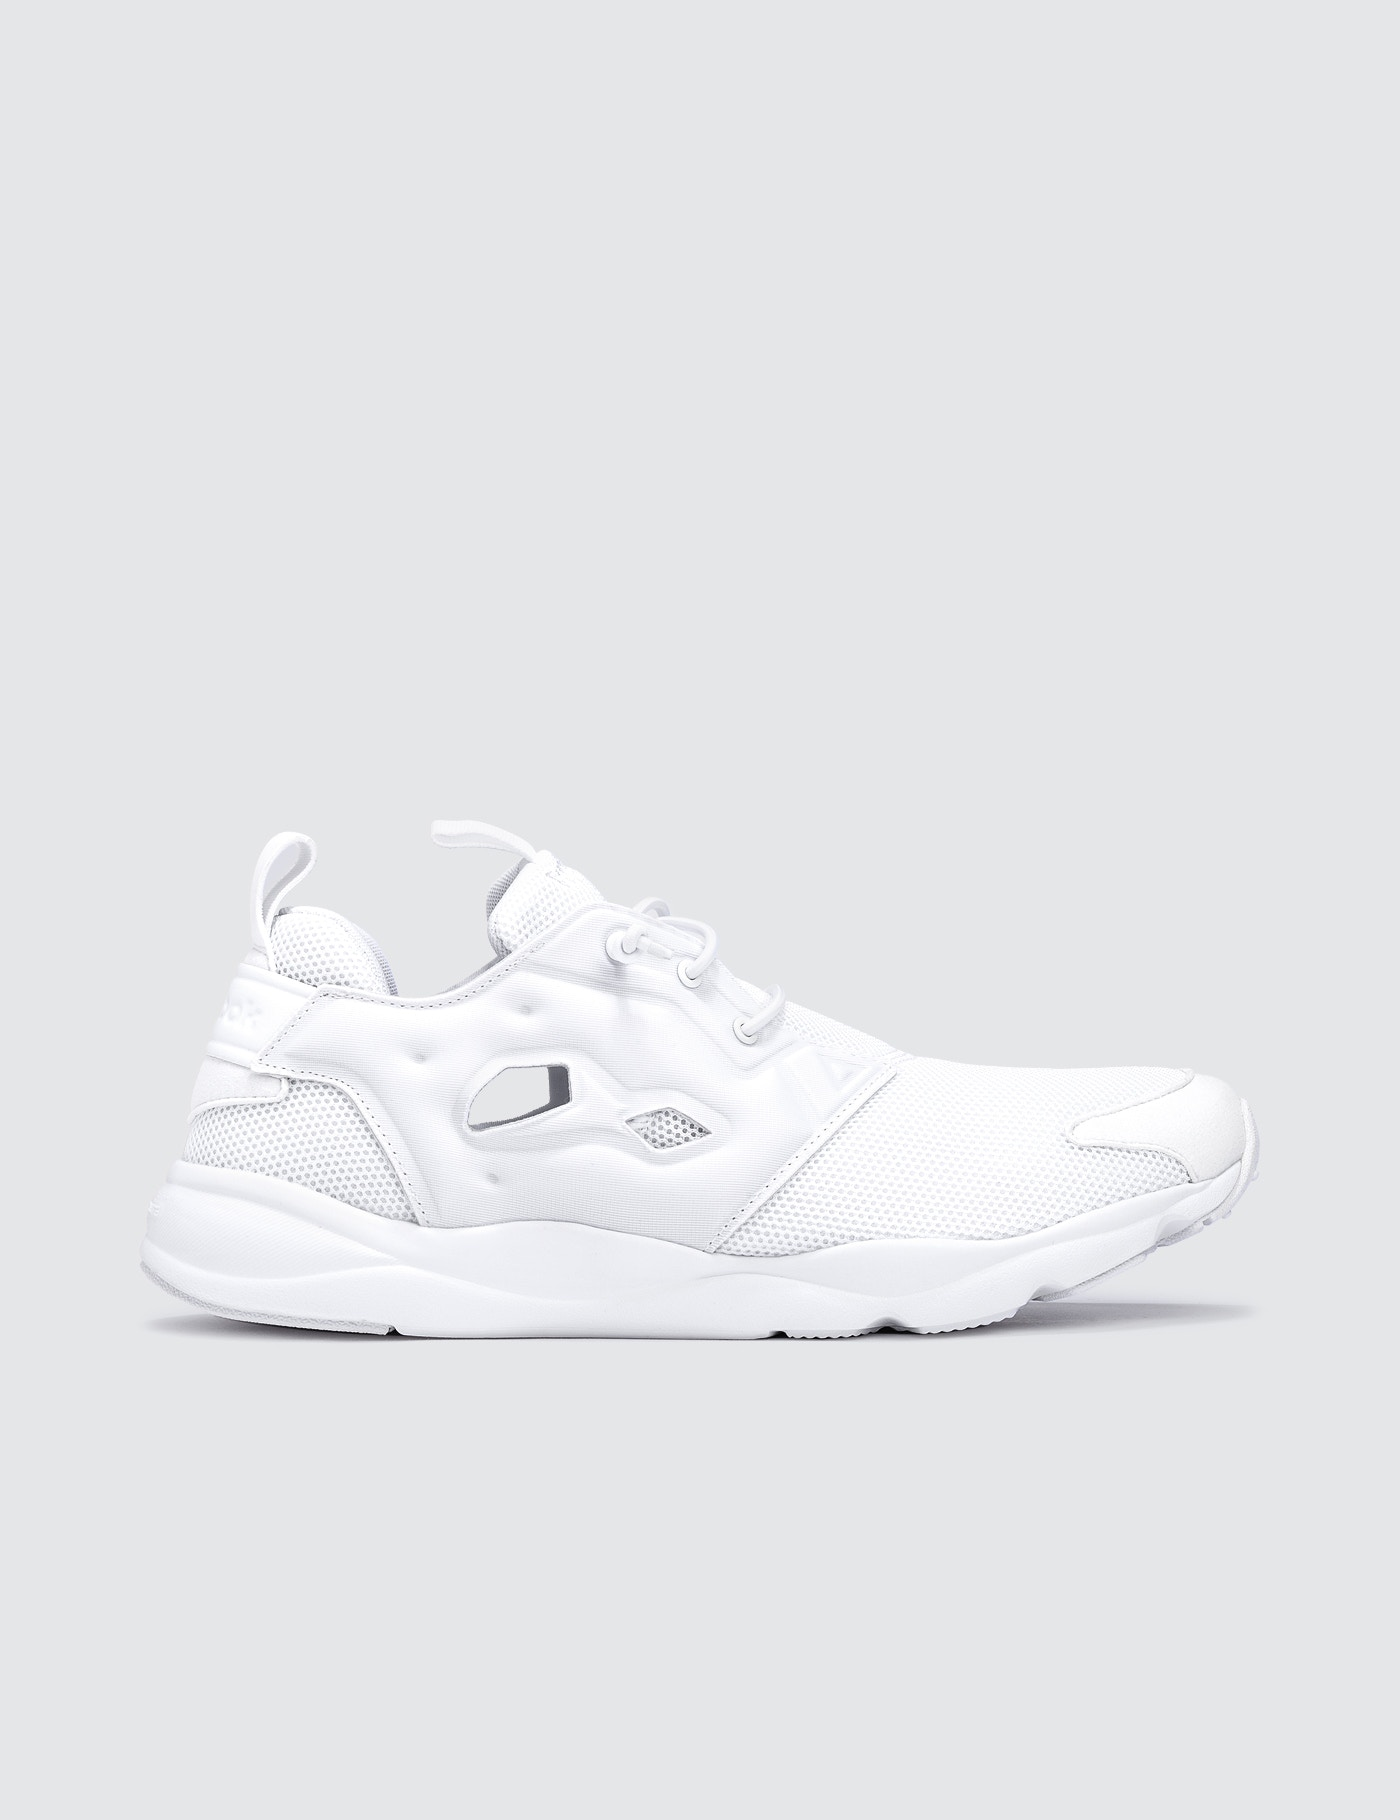 Buy Original Reebok Furylite at Indonesia  2949364cb